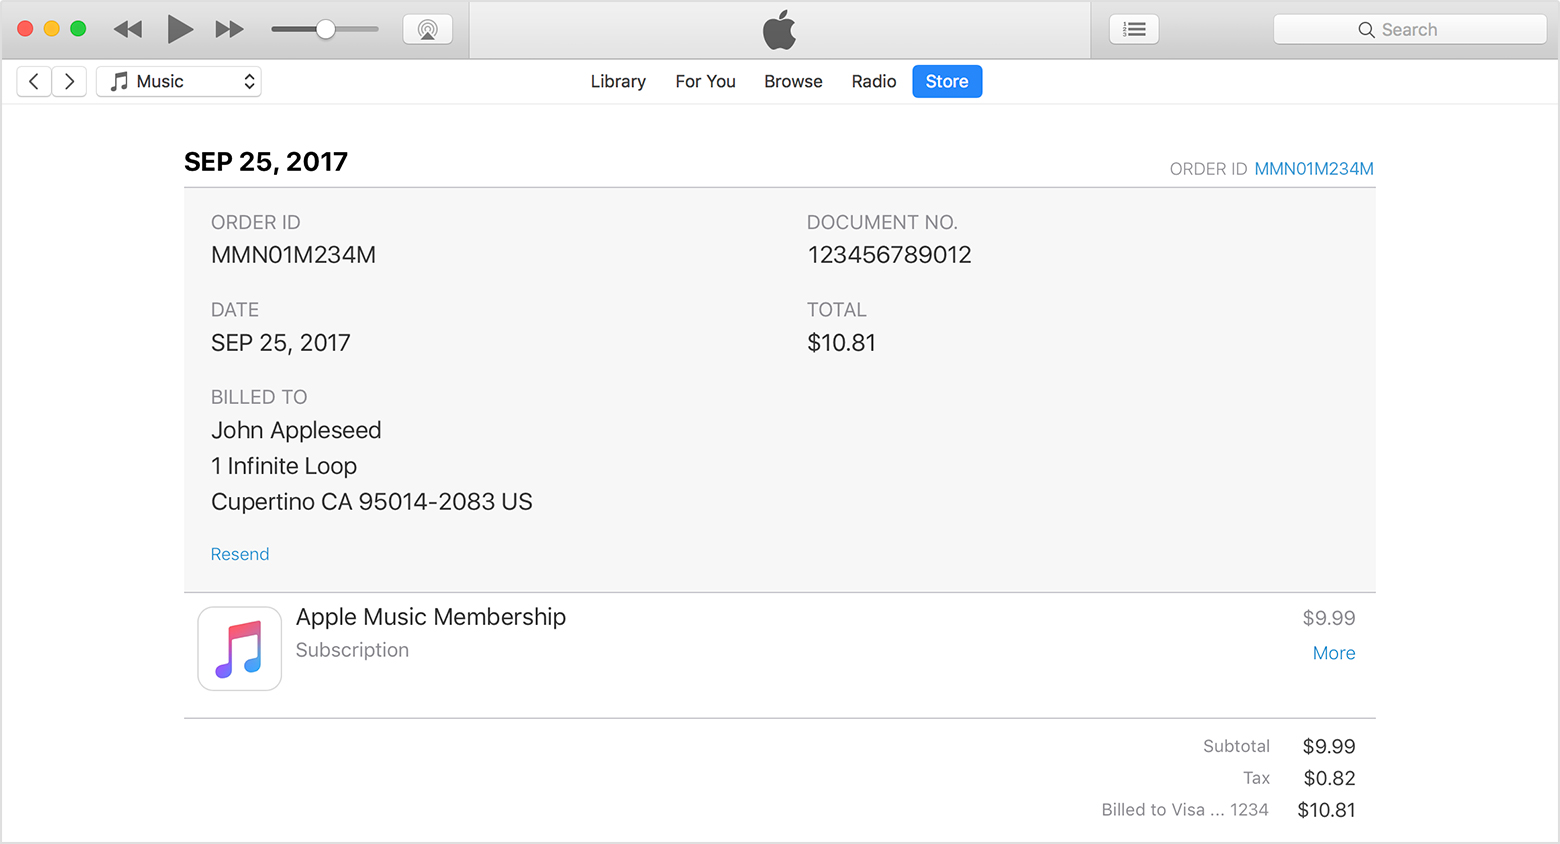 How to find purchases in itunes